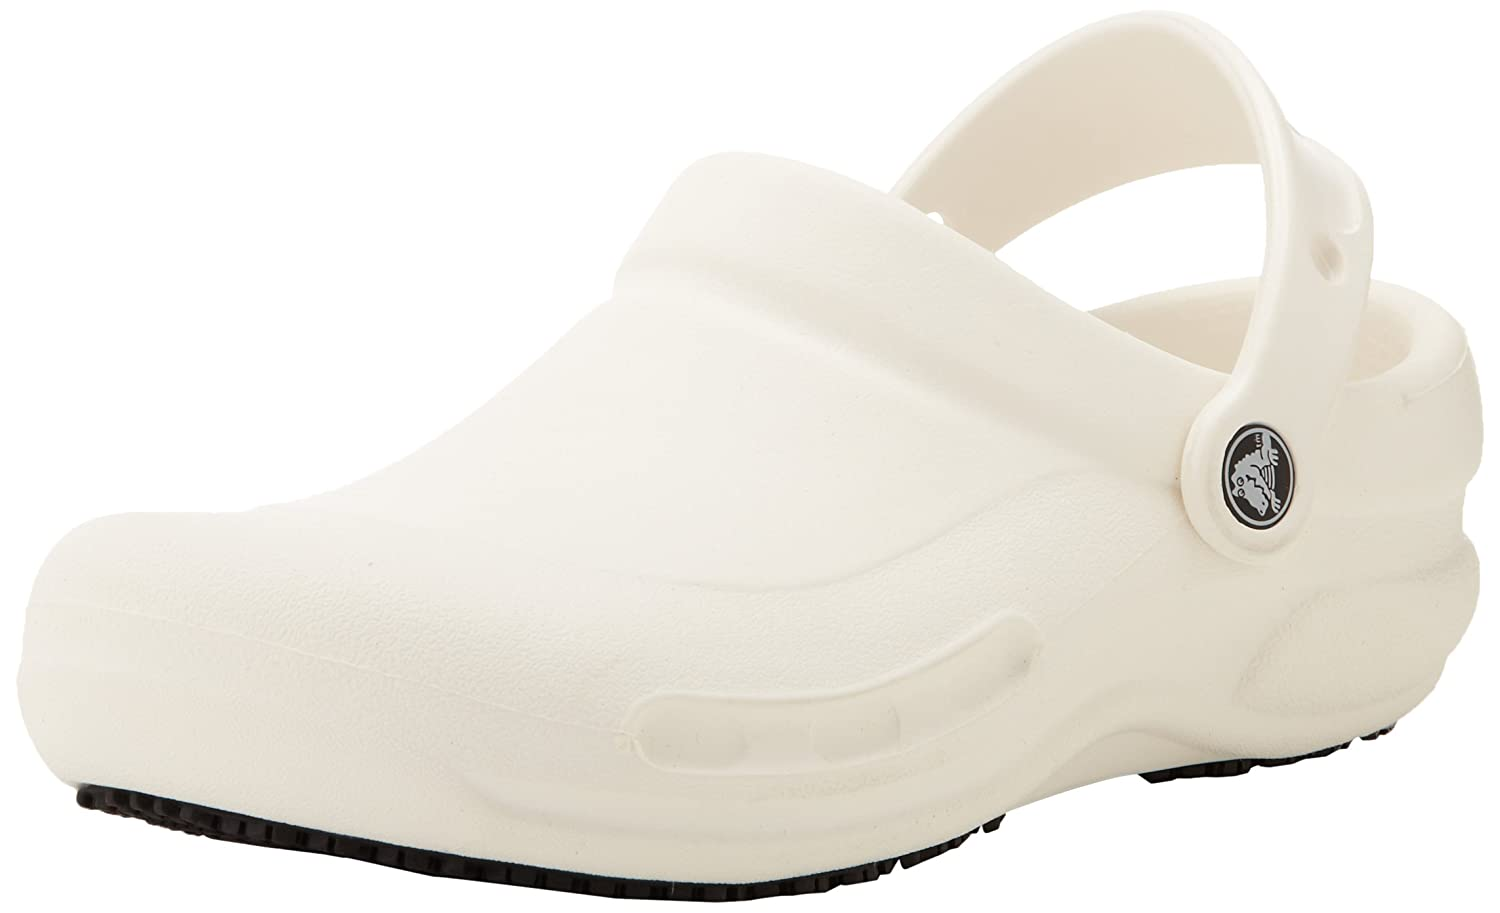 42ff20d9a crocs Unisex Bistro Rubber Clogs and Mules  Buy Online at Low Prices in  India - Amazon.in